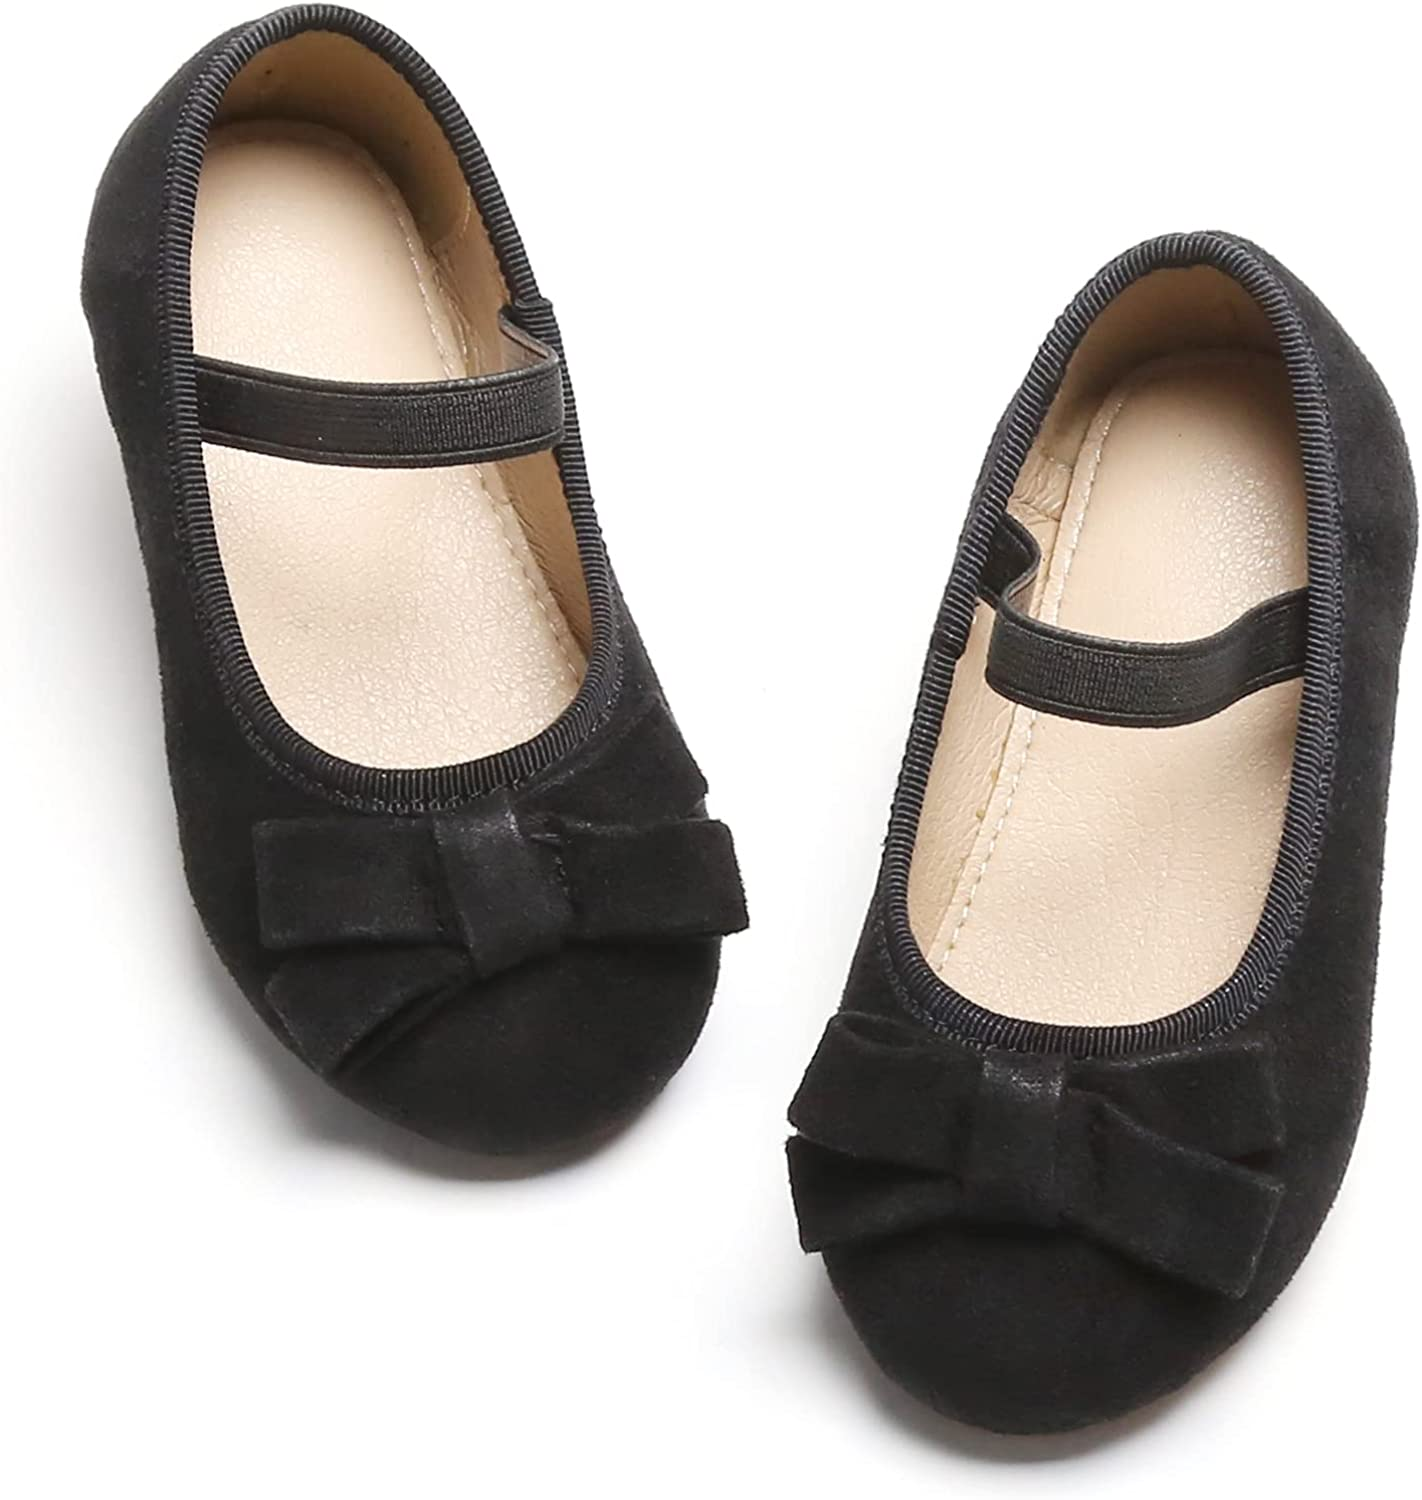 GINFIVE Limited time Baltimore Mall sale Toddler Girls Mary Jane Little Par Ballerina Shoes